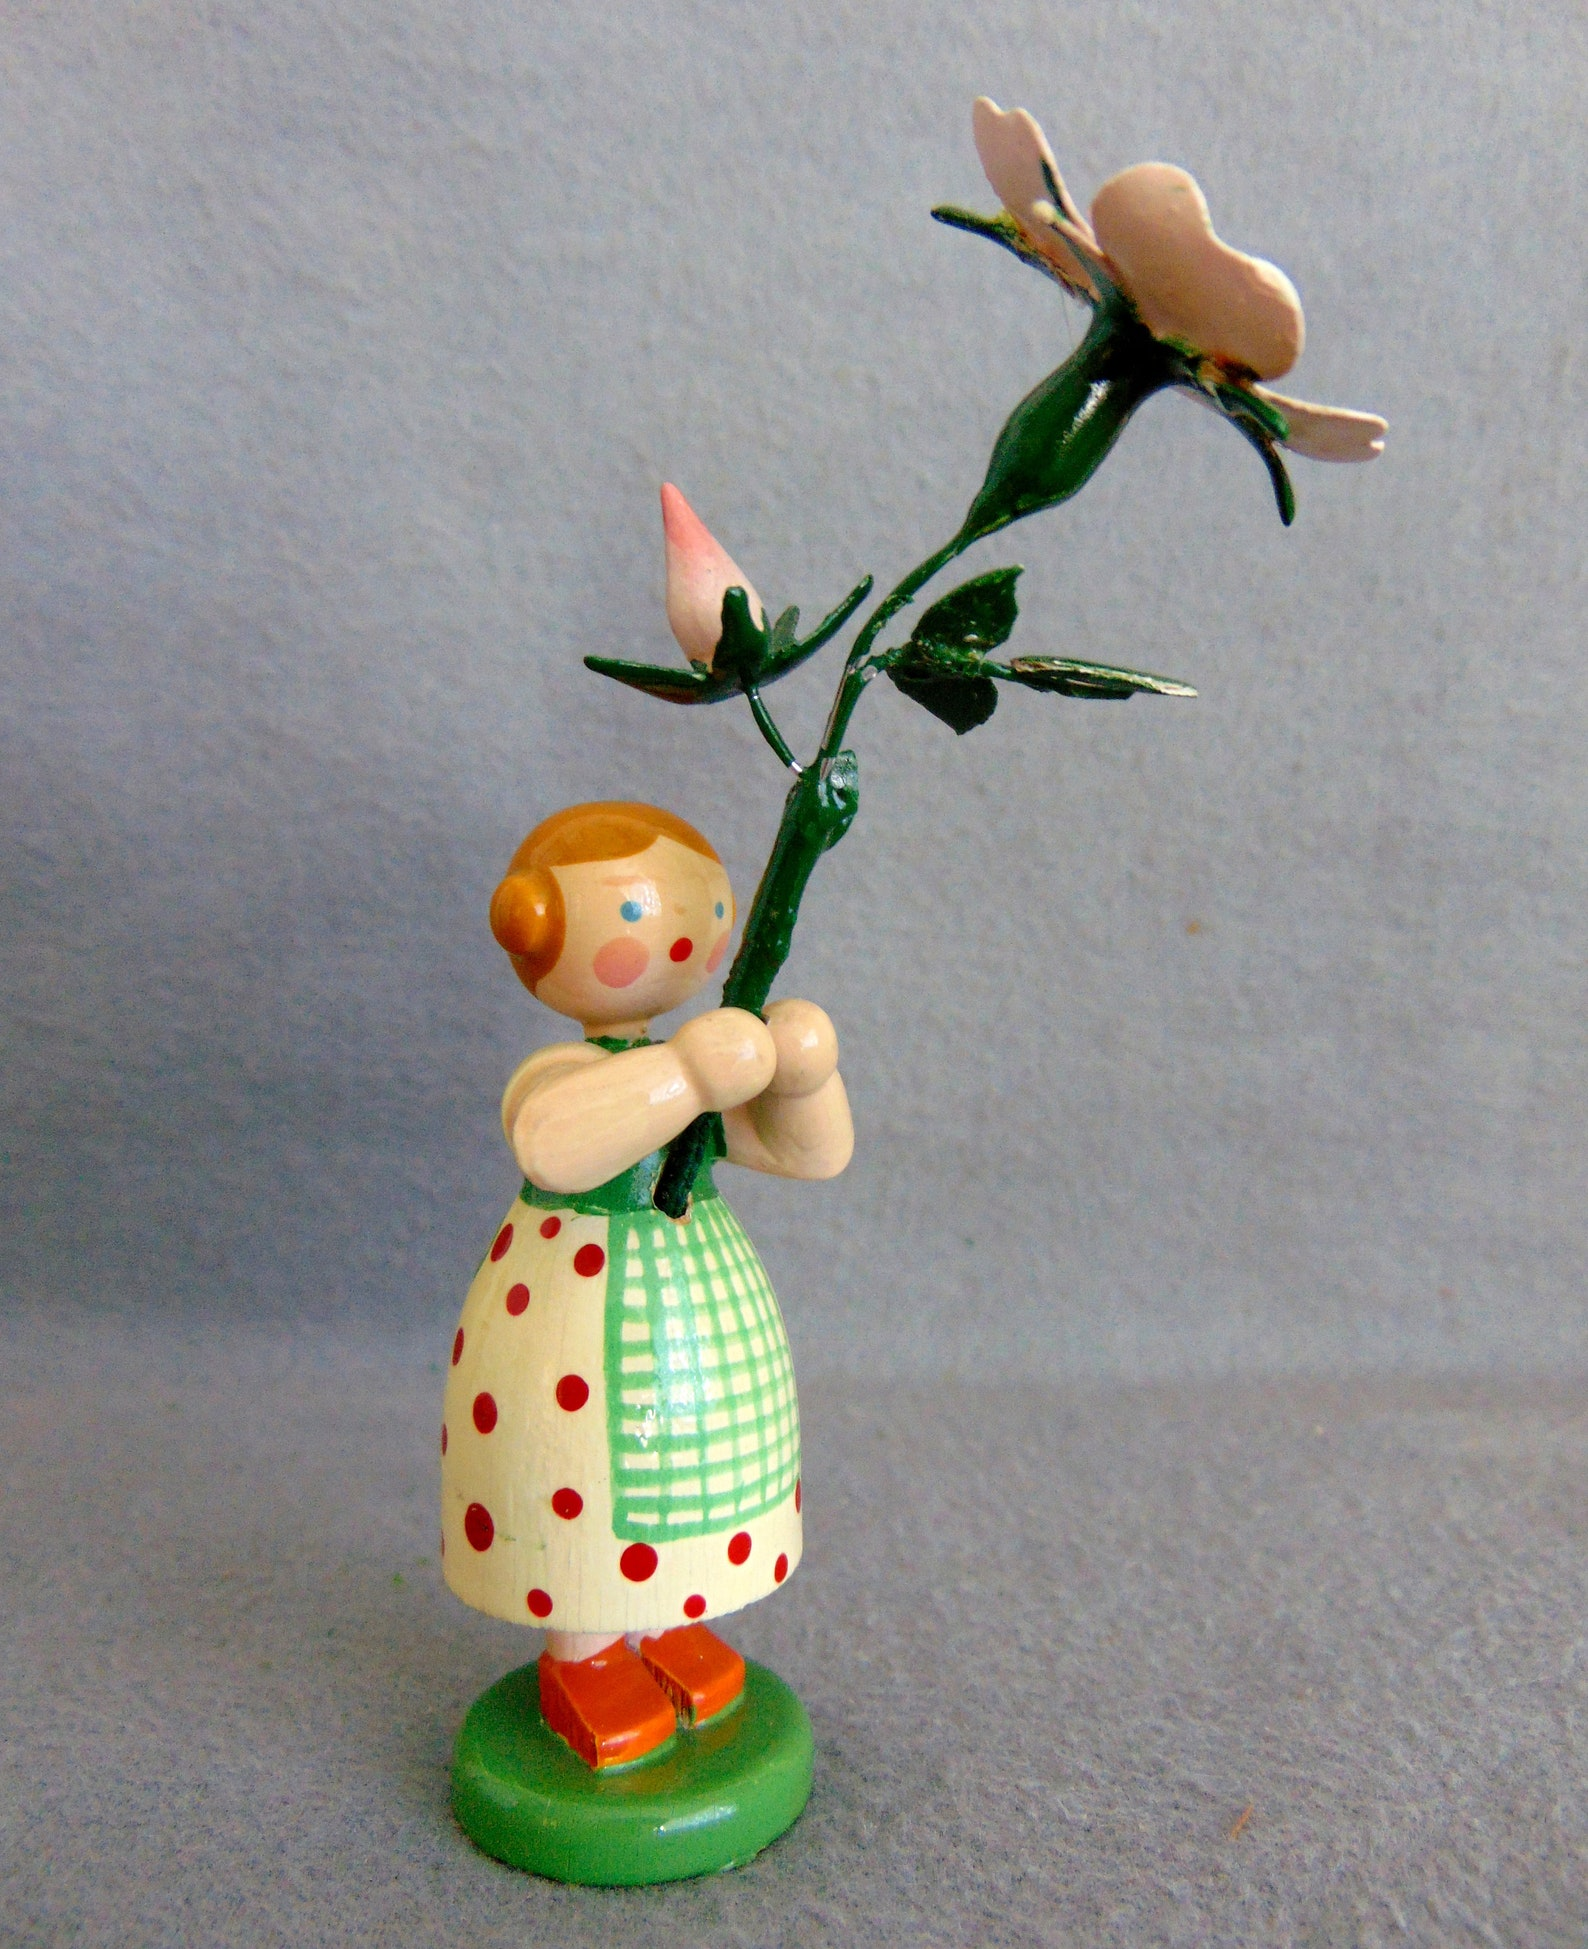 Vintage German WEHA Erzgebirge Easter Display Ornament Flower Girl